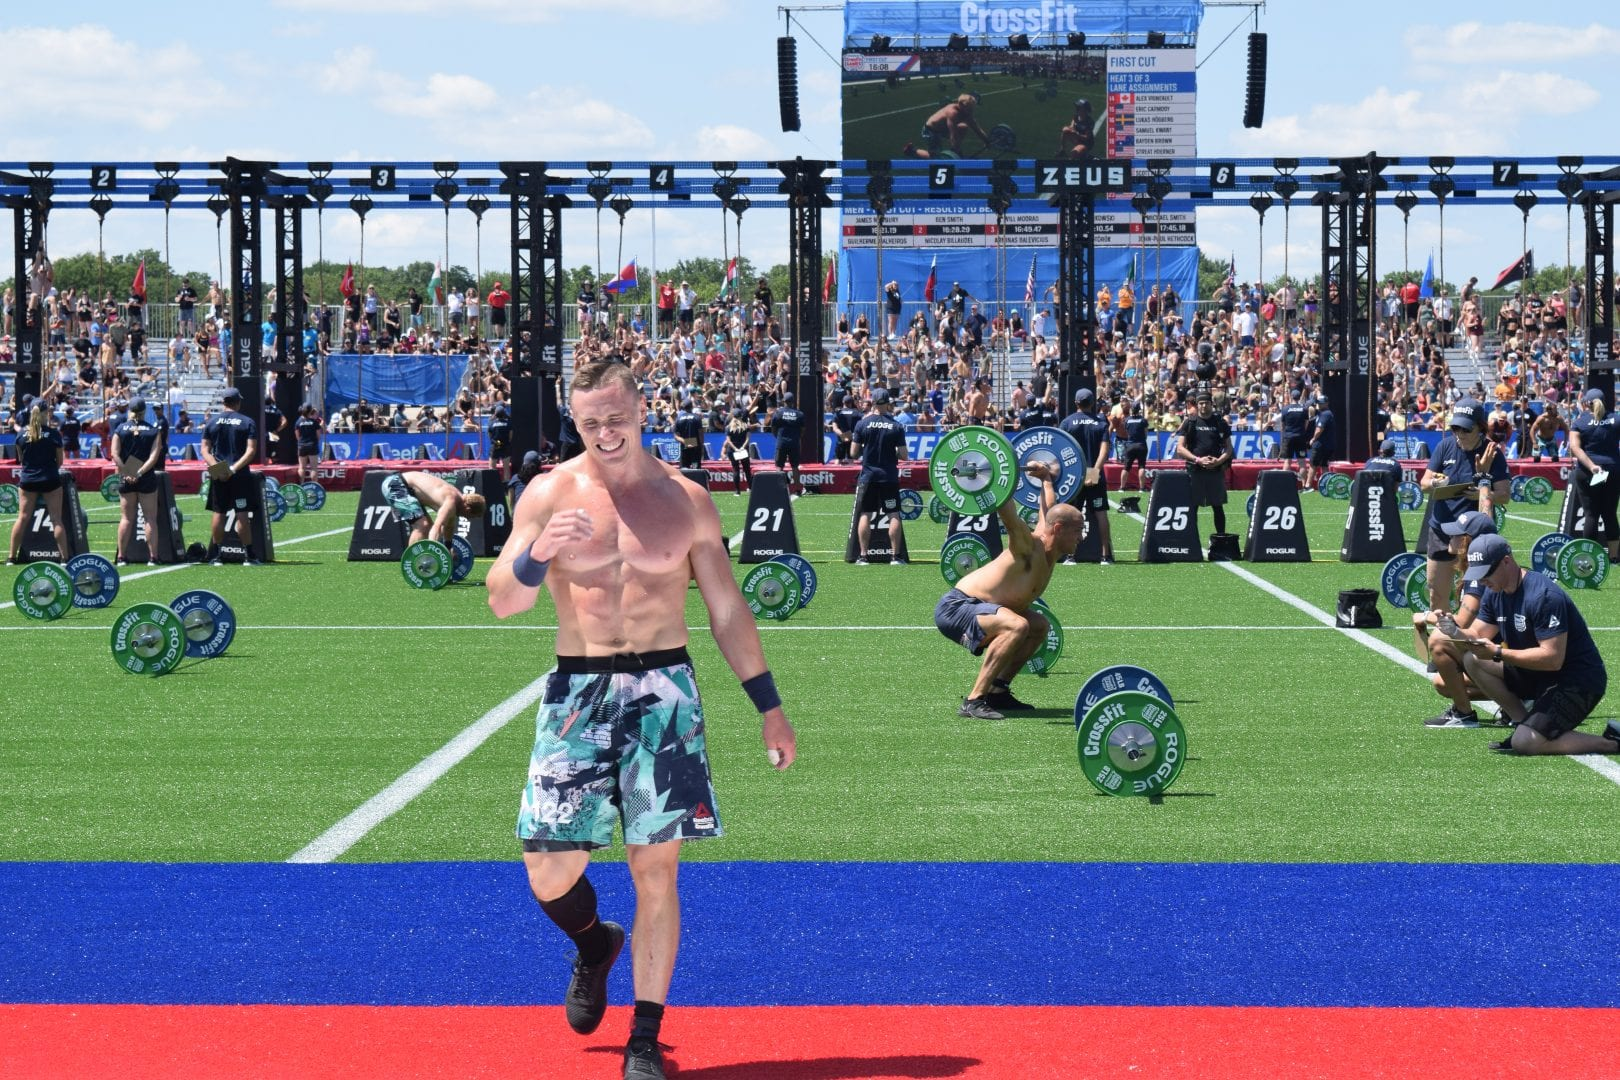 Bjorgvin Karl Gudmundsson crosses the finish line of the first event at the 2019 CrossFit Games